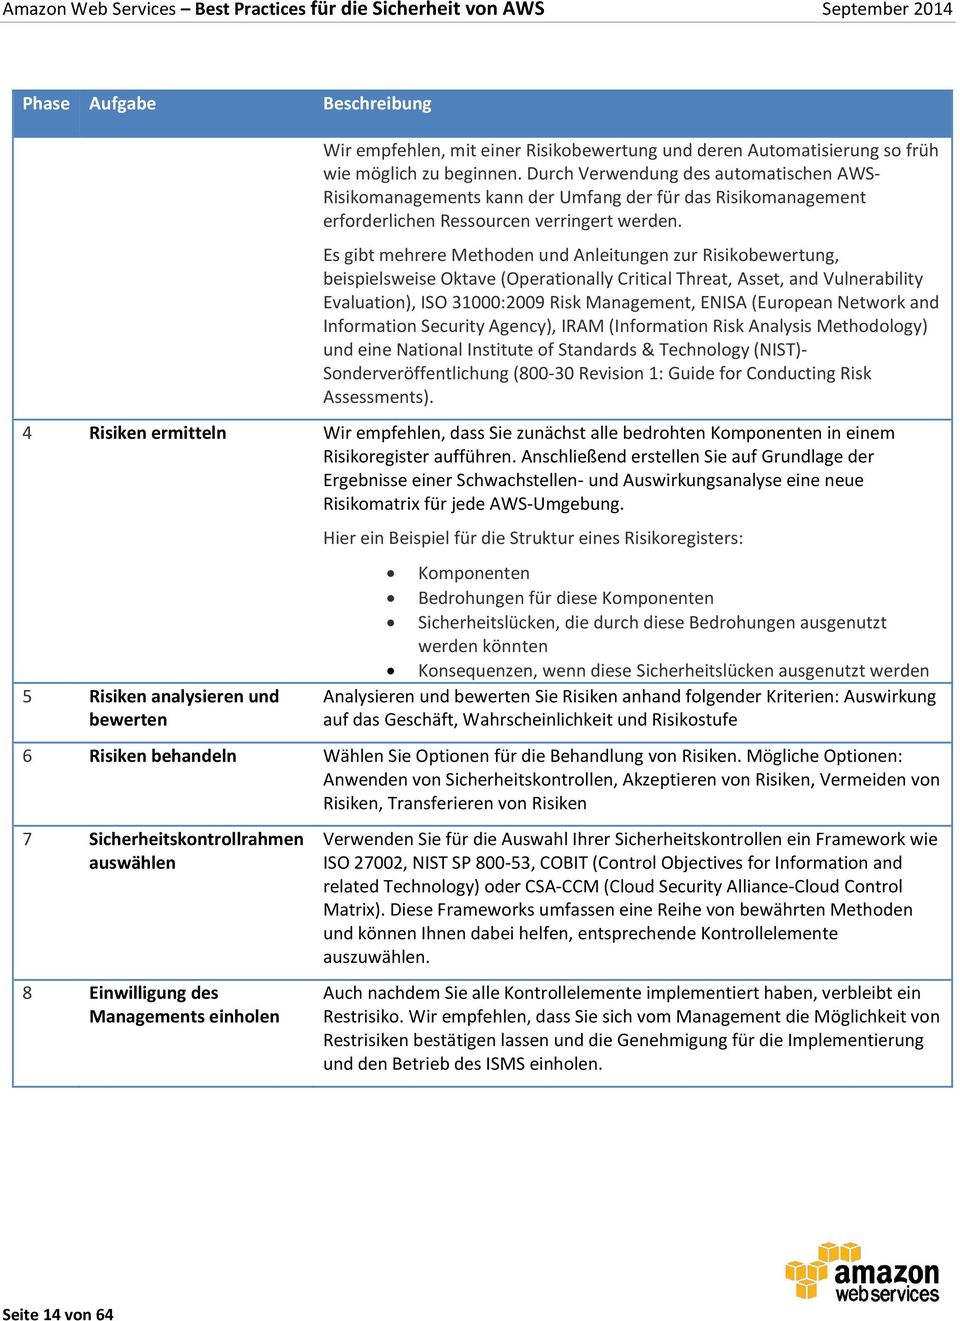 Es gibt mehrere Methoden und Anleitungen zur Risikobewertung, beispielsweise Oktave (Operationally Critical Threat, Asset, and Vulnerability Evaluation), ISO 31000:2009 Risk Management, ENISA